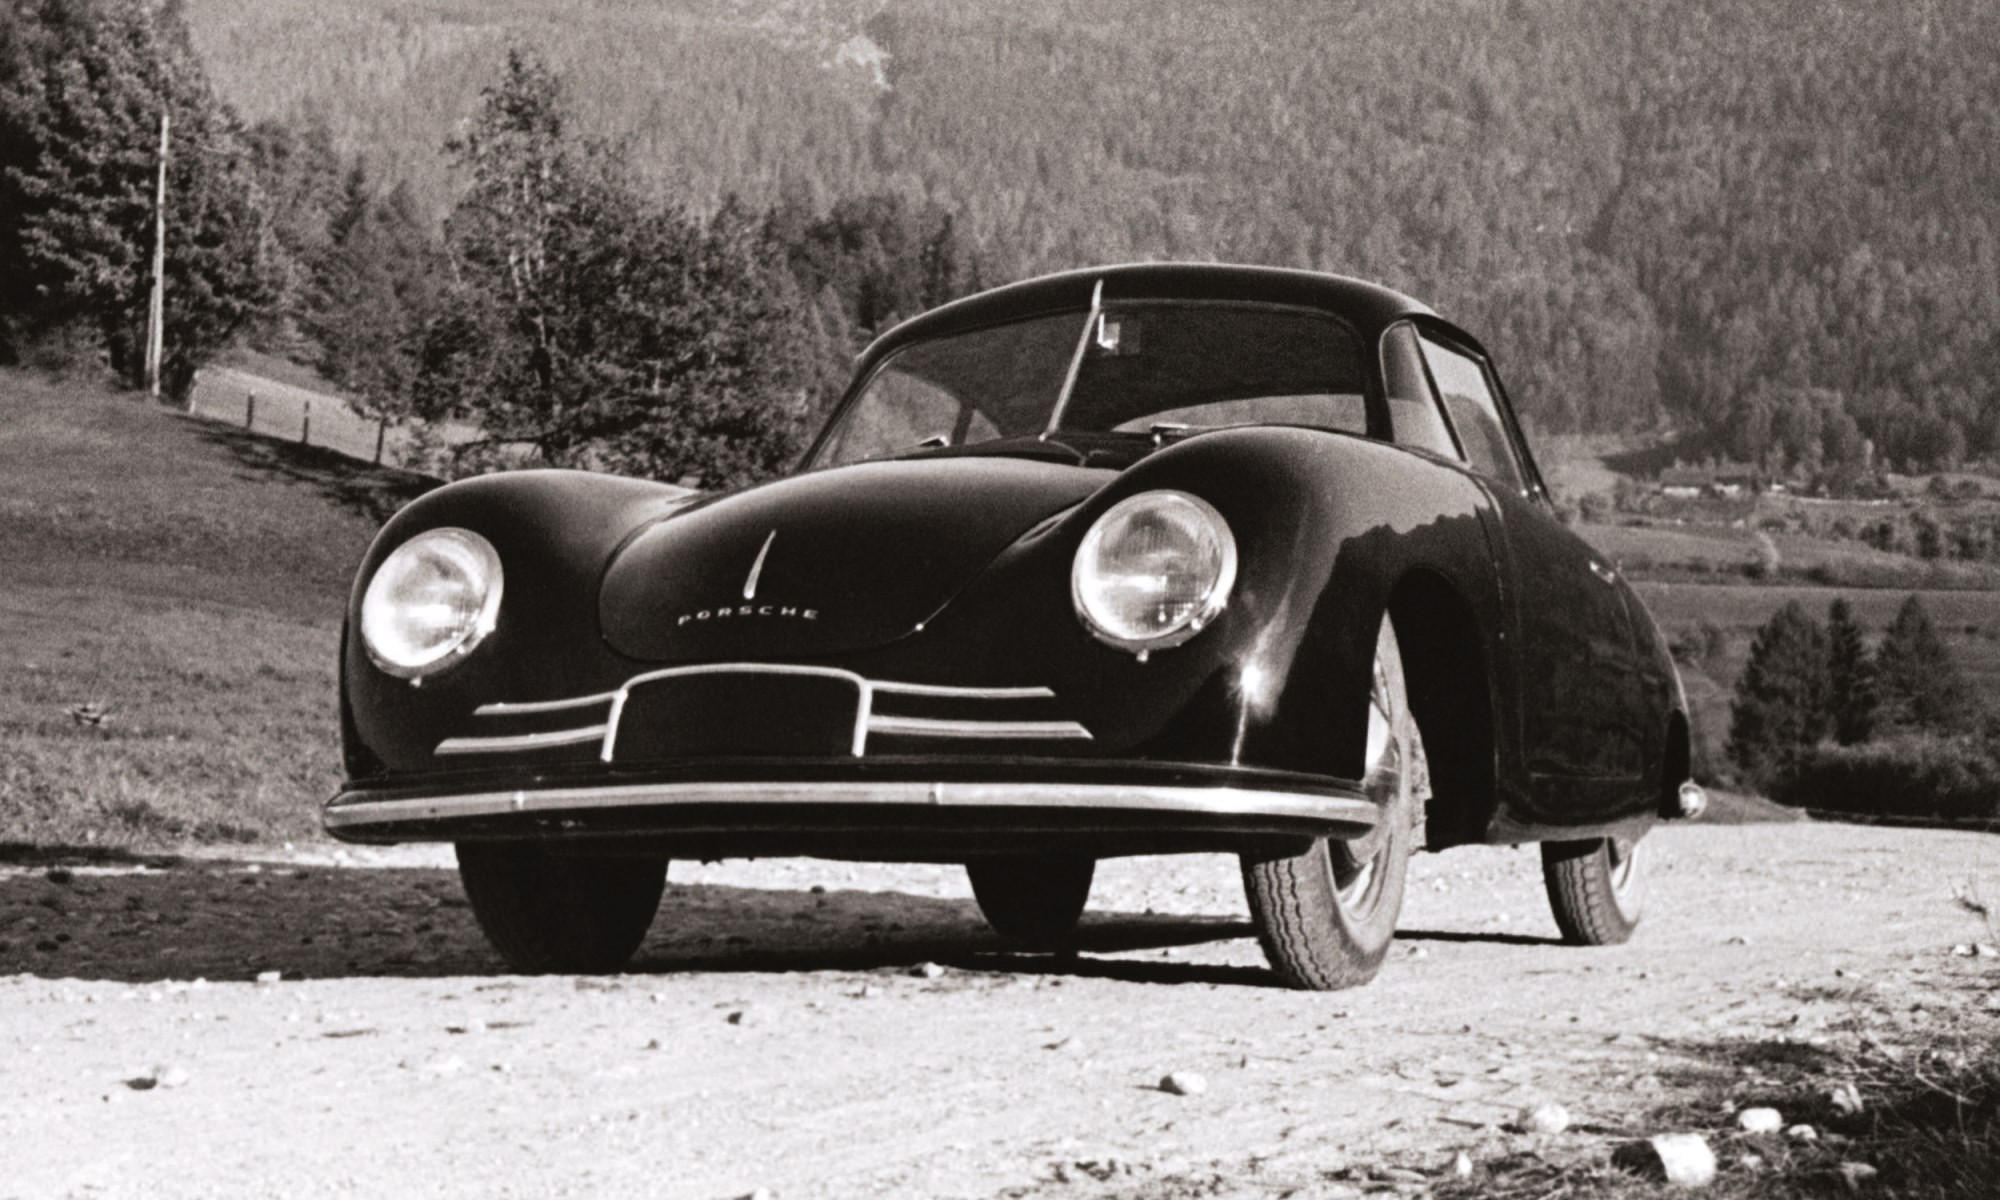 Porsche 70 years starts with this car.